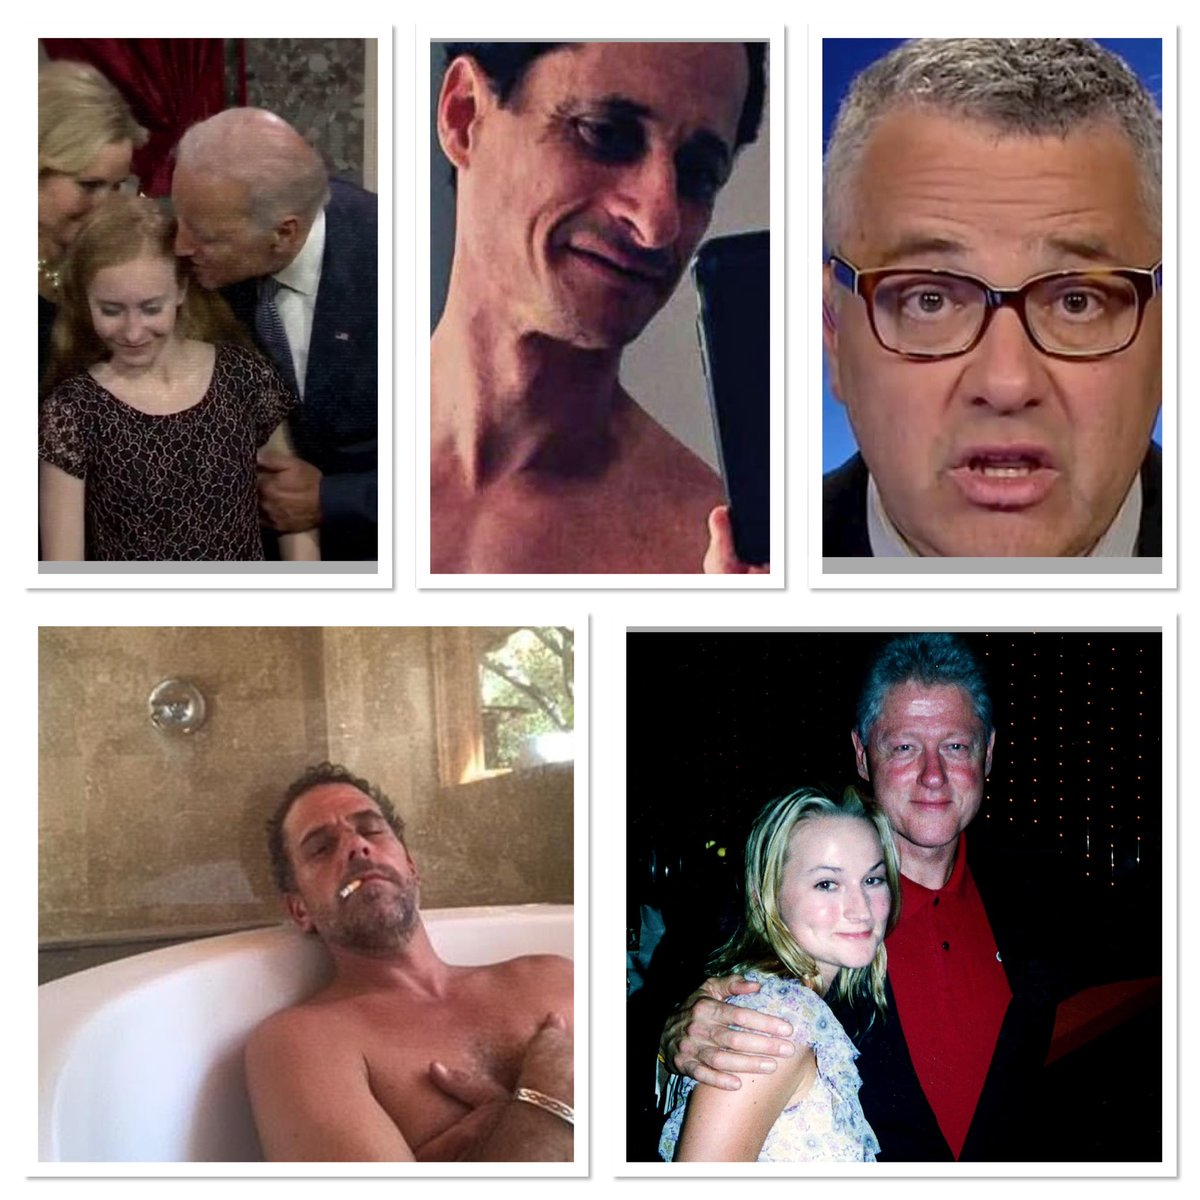 Joe Biden sniffs little girls. Hunter films himself smoking crack. Toobin plays with his penis while on a business Zoom call. Anthony Weiner shares photos of his wiener. Bill Clinton is a known sex predator. And these sickos say @realdonaldtrump's conduct is inappropriate!